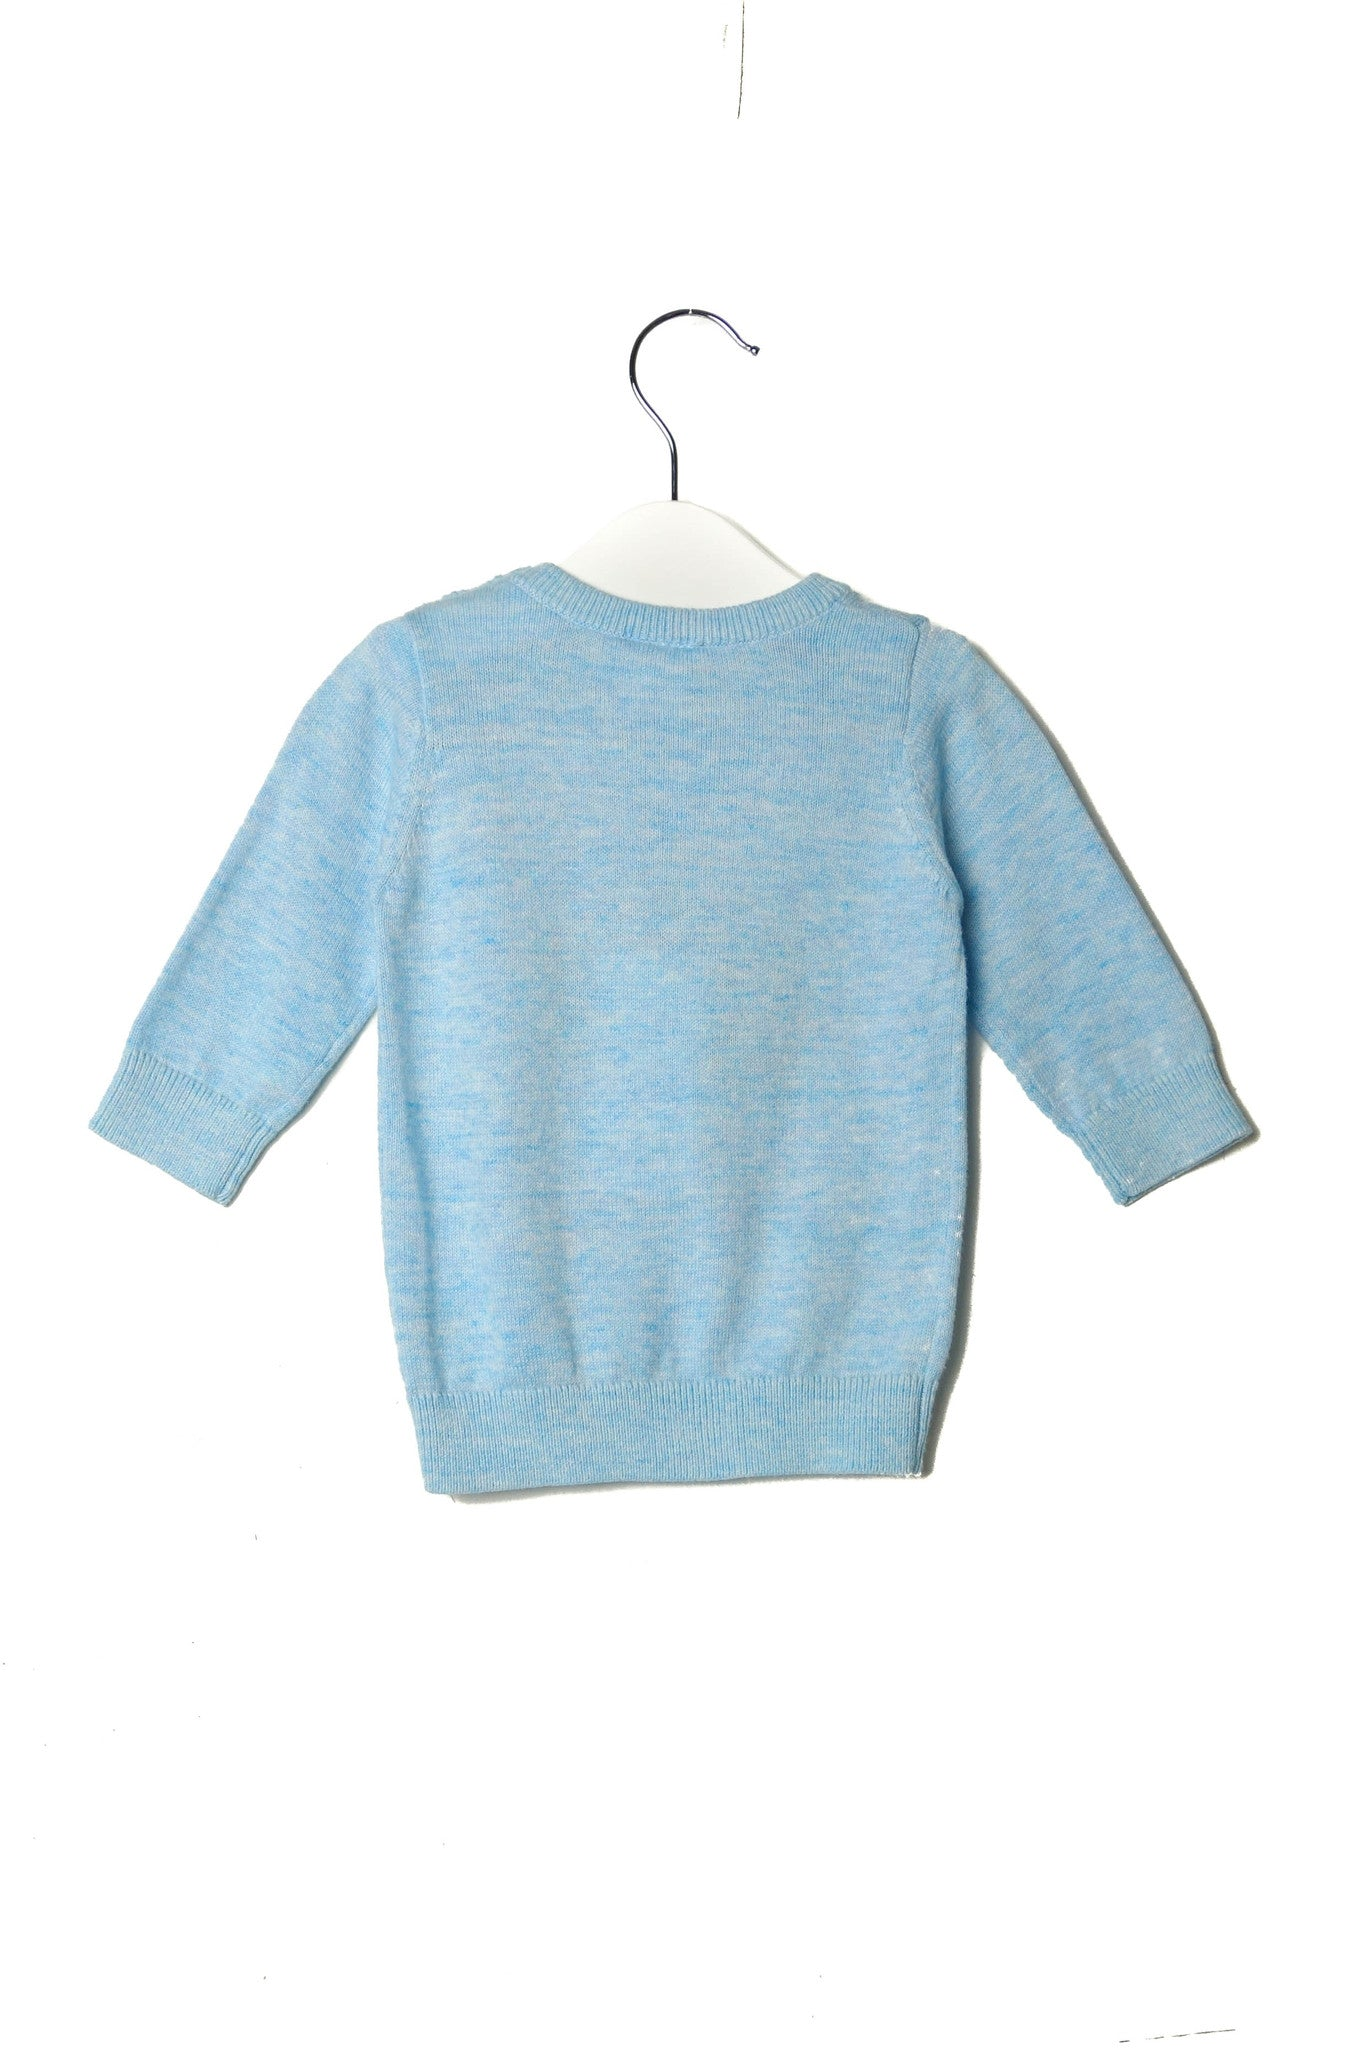 10002518 Seed Baby~Sweater 0-3M at Retykle